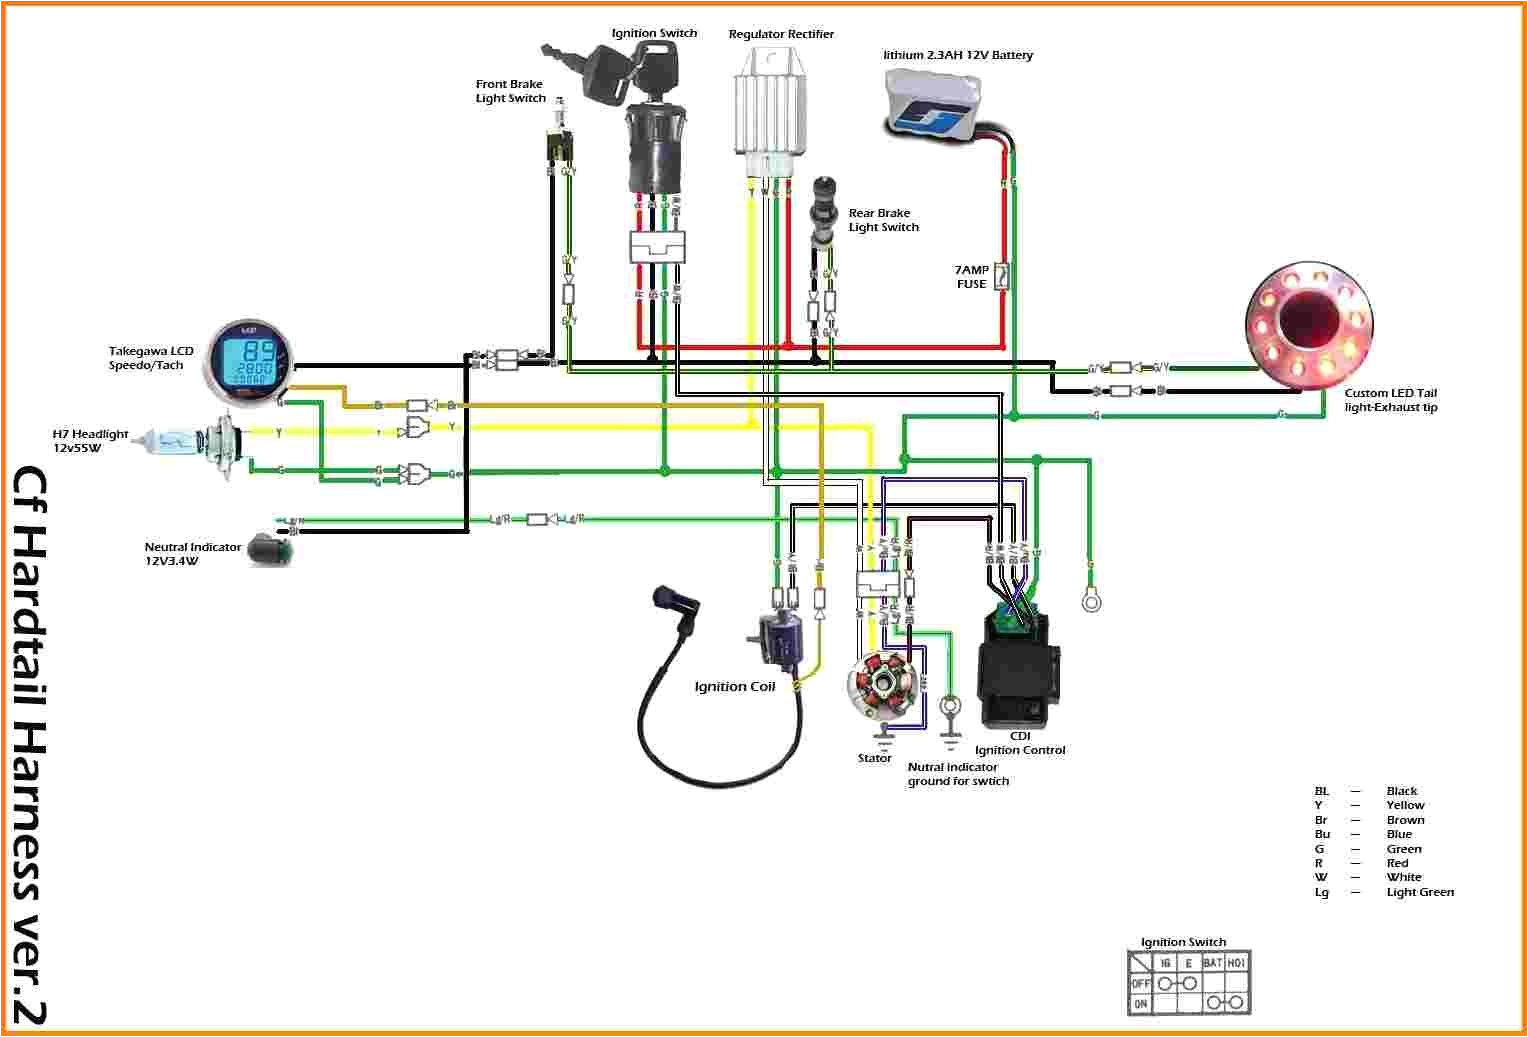 wiring harness for chinese atv wiring diagram files chinese atv wiring diagram 110cc chinese atv wiring